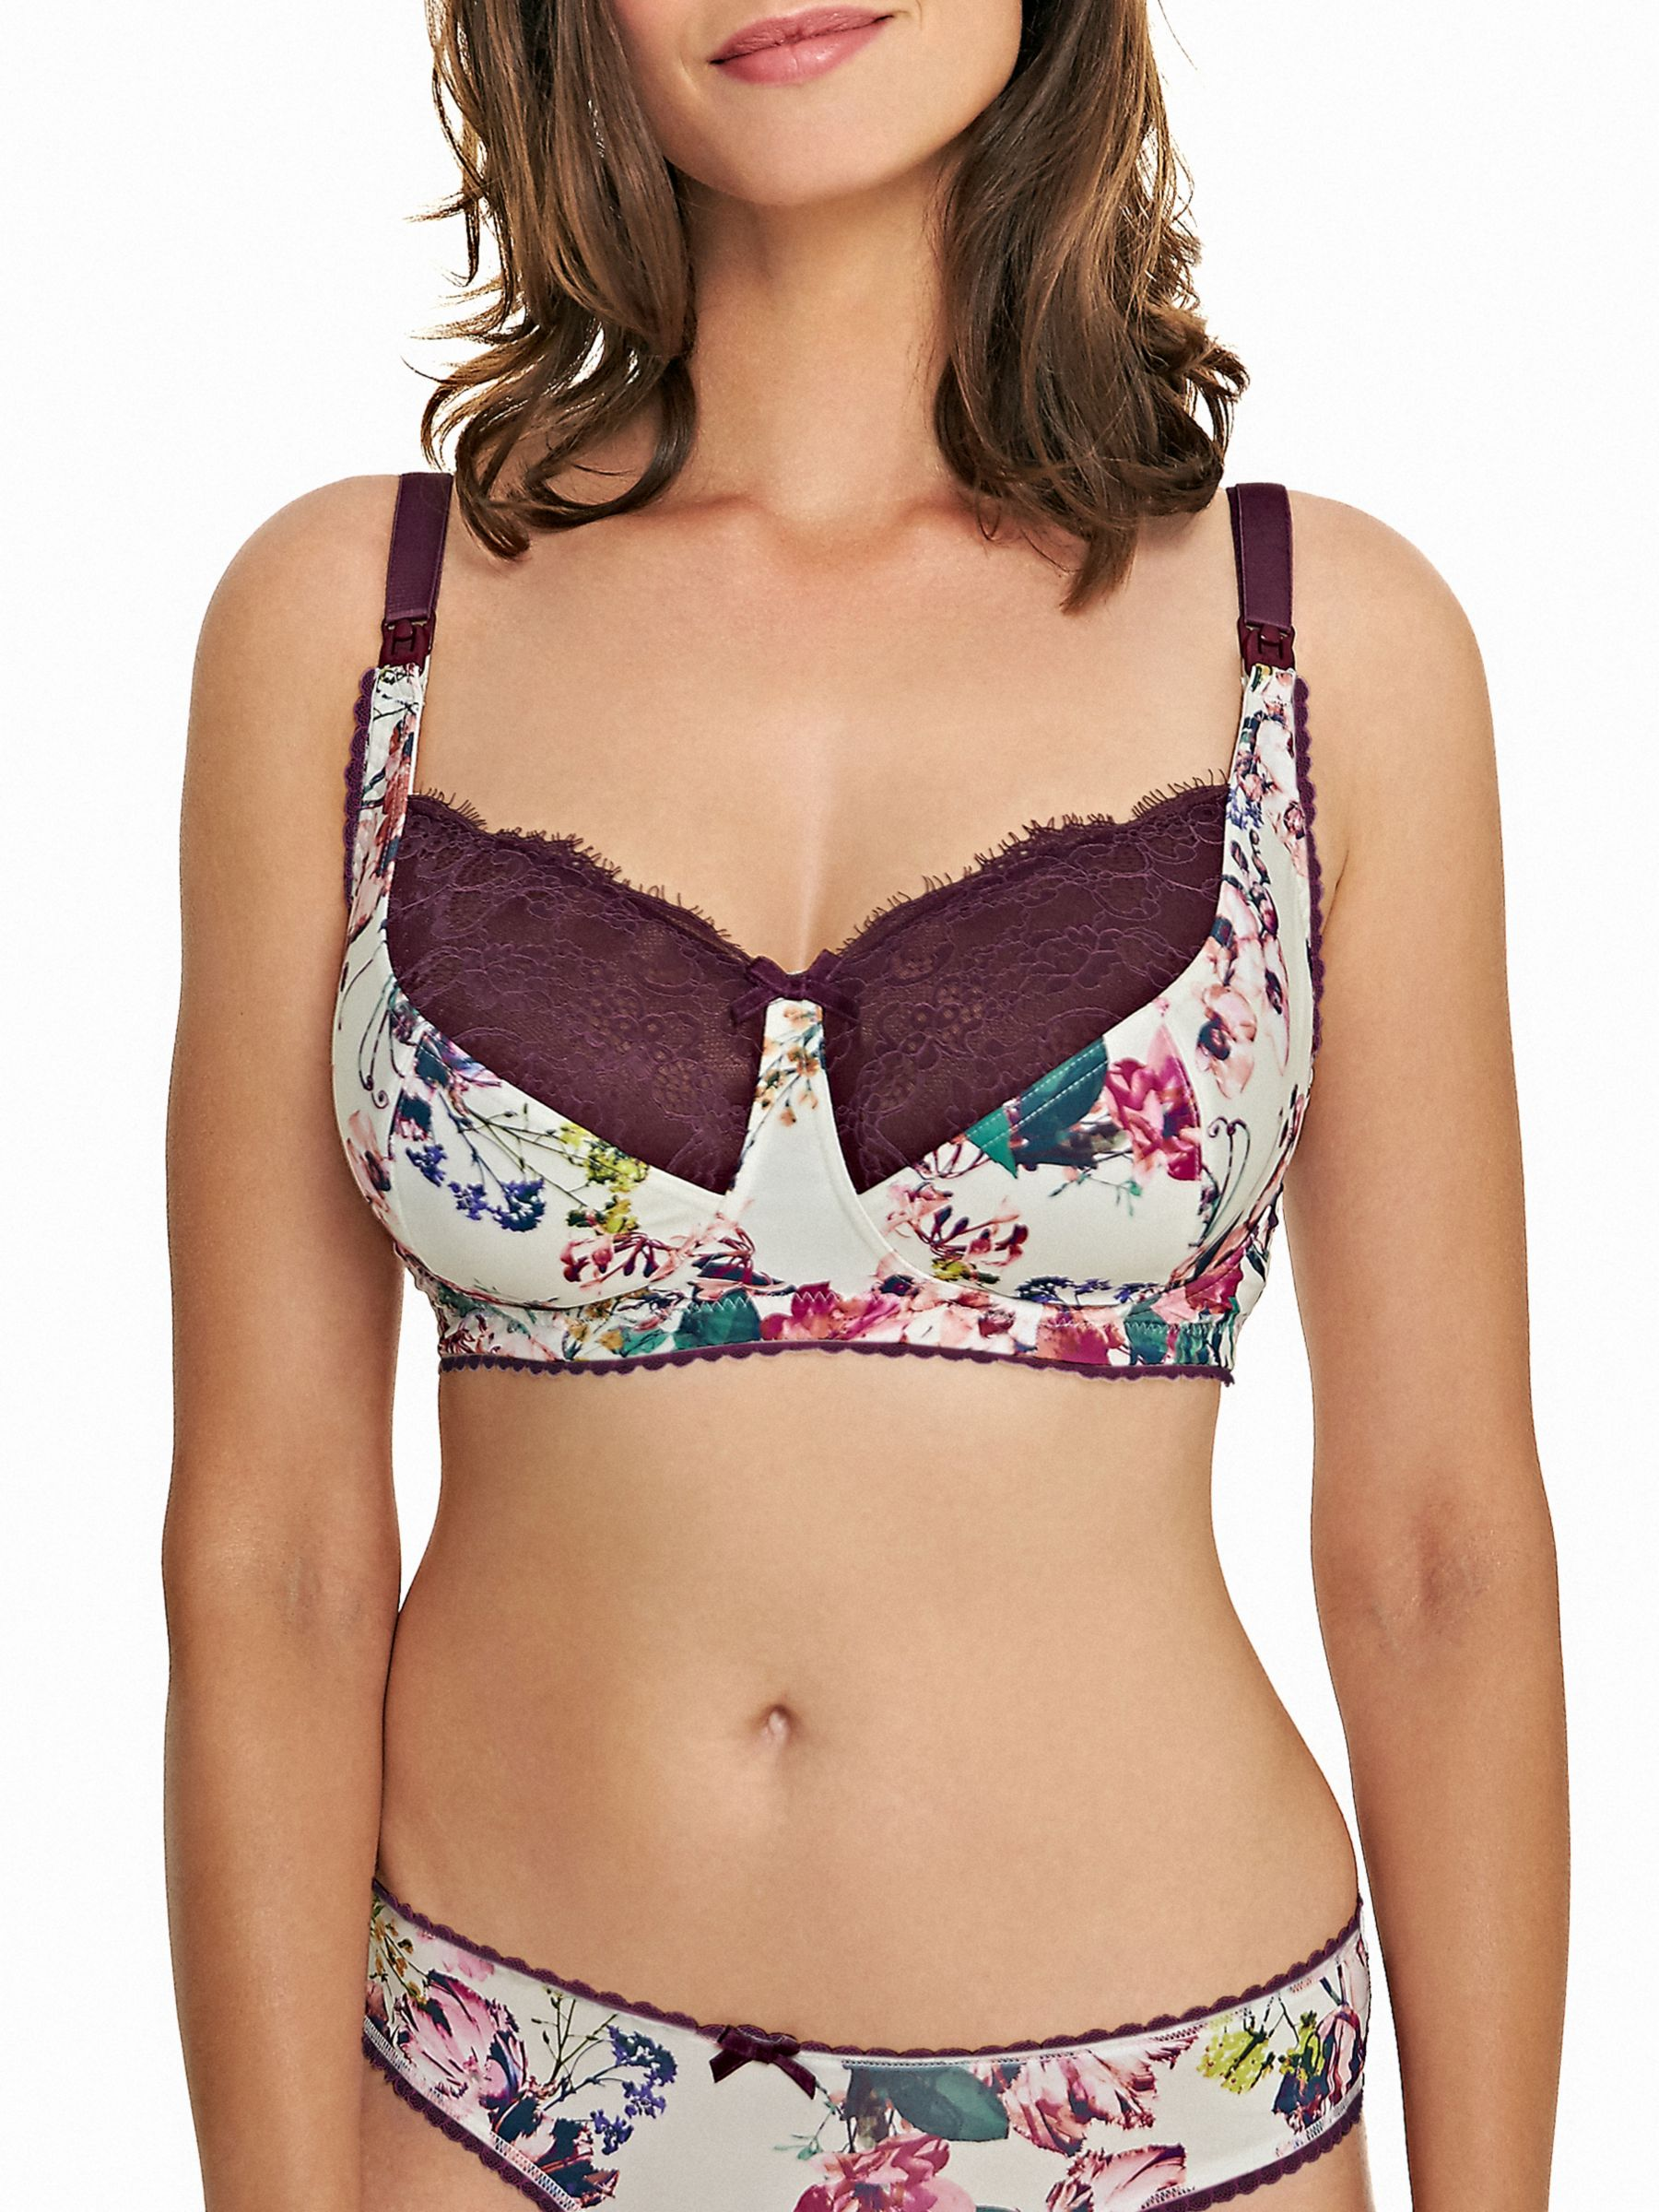 Royce Royce Florence Maternity Bra, Aubergine/Off White